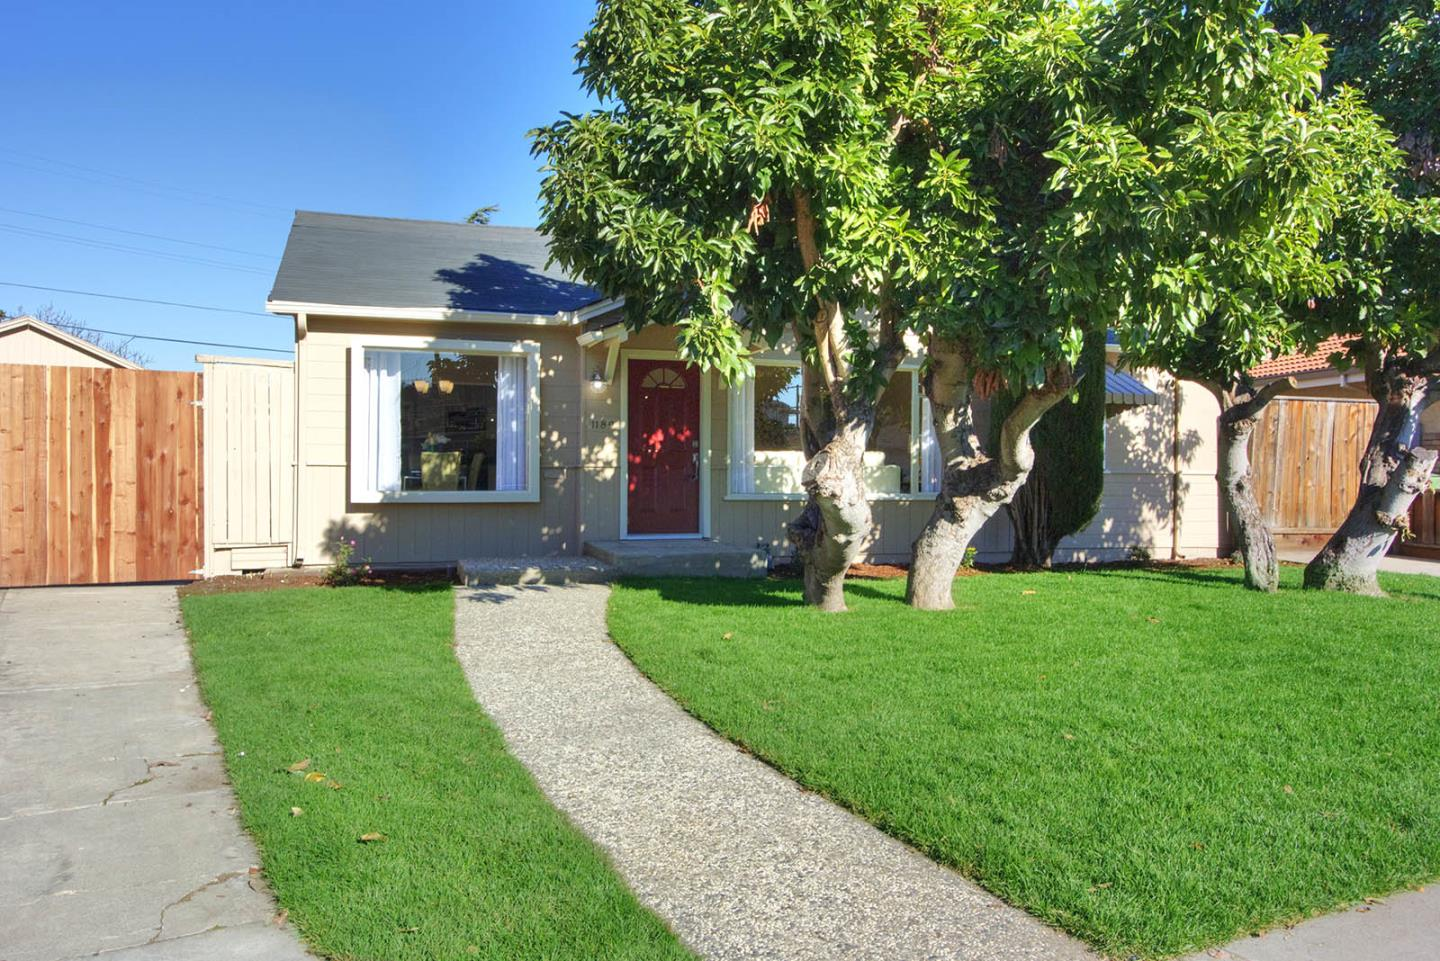 Santa Clara Homes for Sale -  New Listings,  1189 Inverness AVE